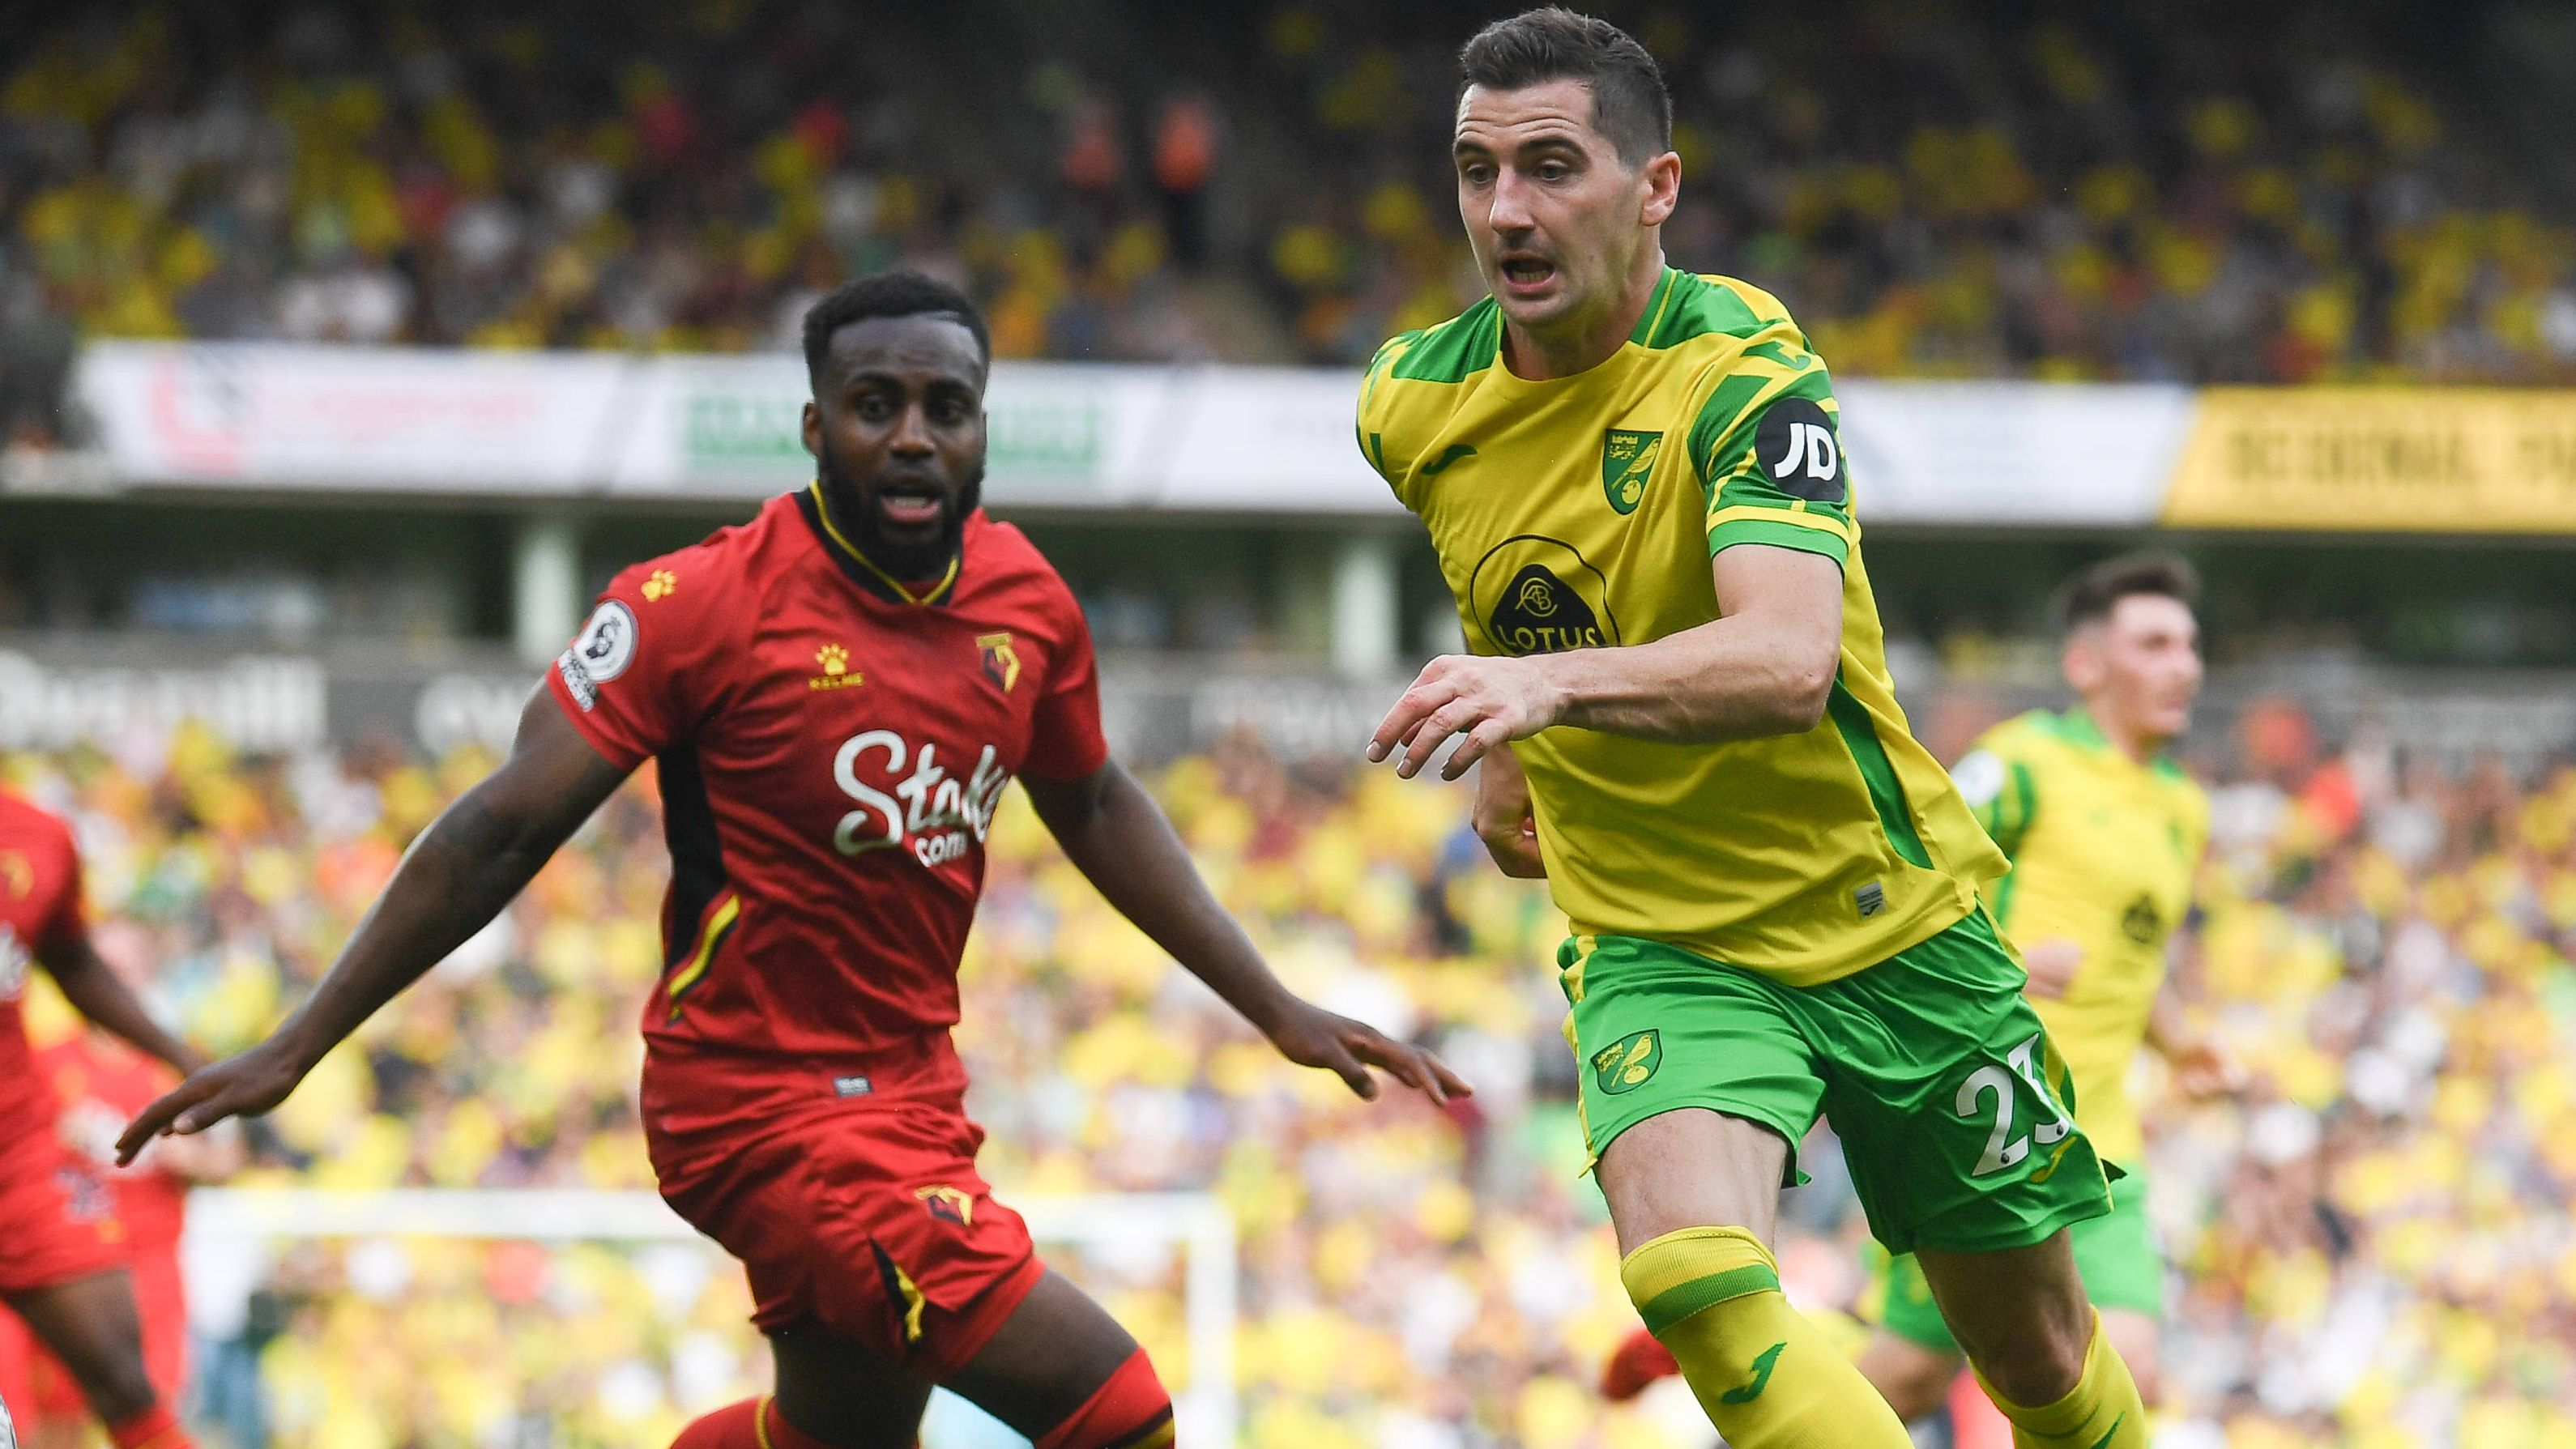 second-half-goals-from-ismaila-sarr-send-norwich-city-to-defeat-against-watford